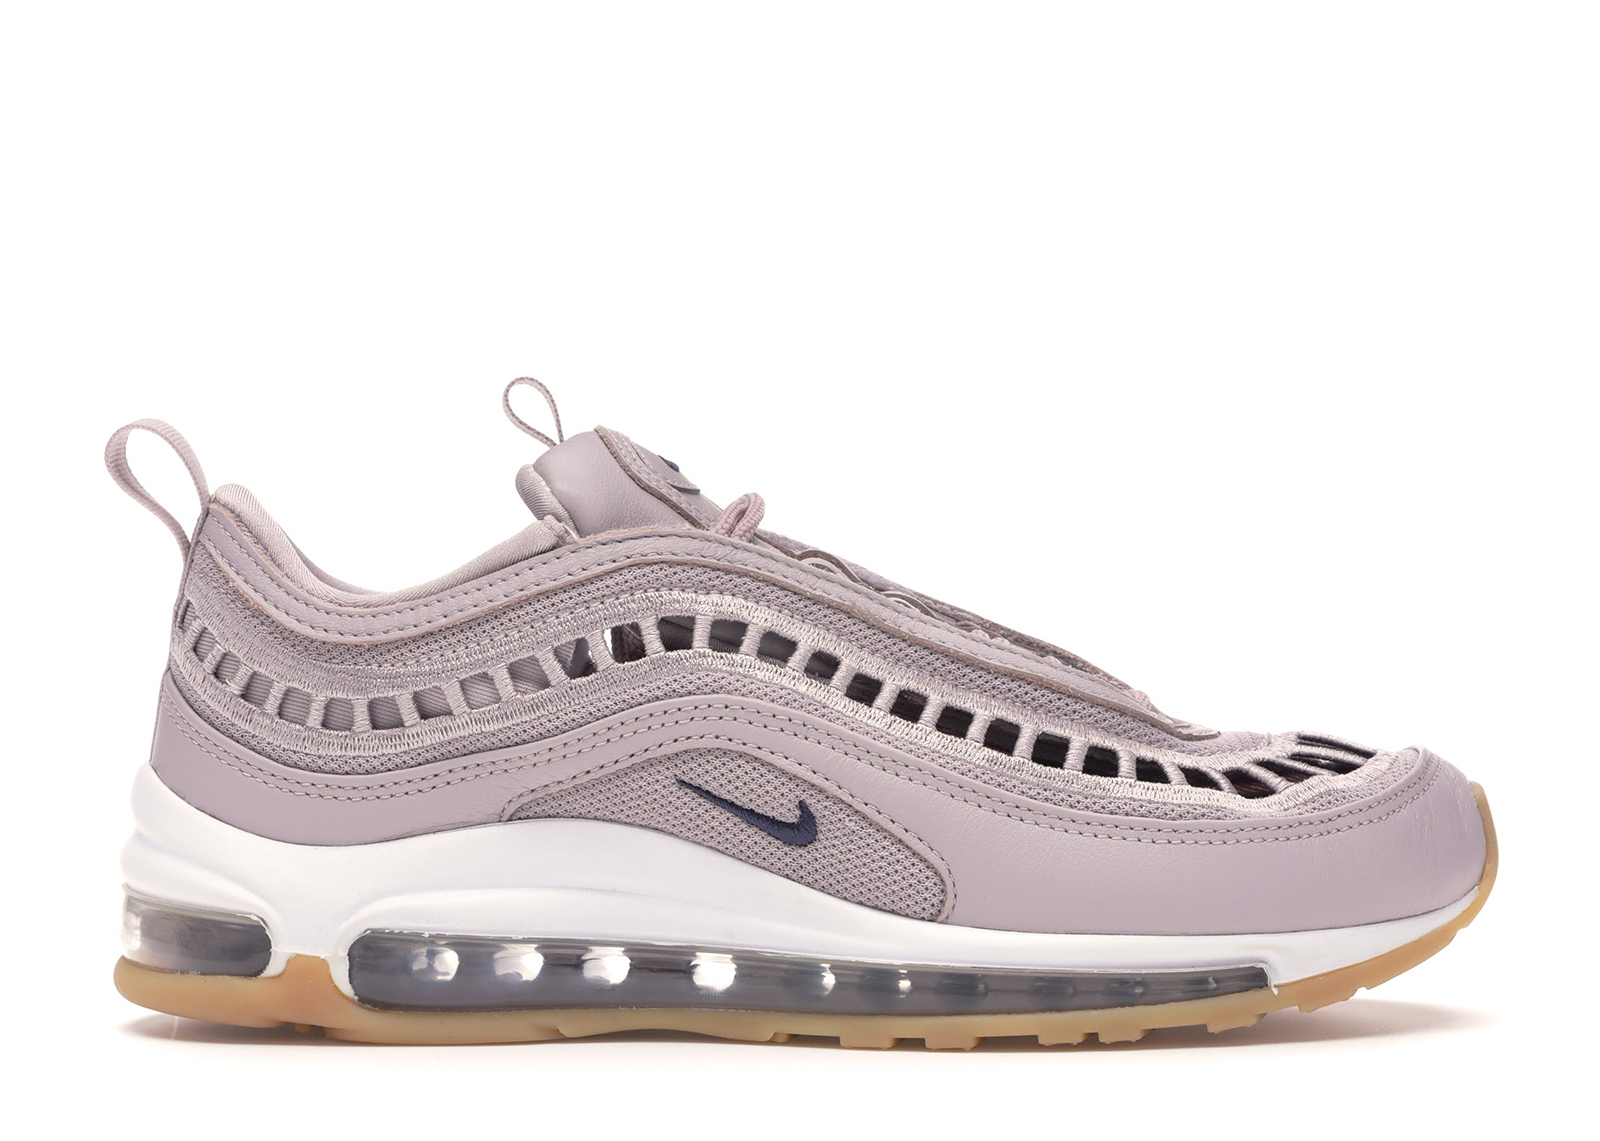 Nike Air Max 97 Ultra 17 Particle Rose (W) - AO2326-600